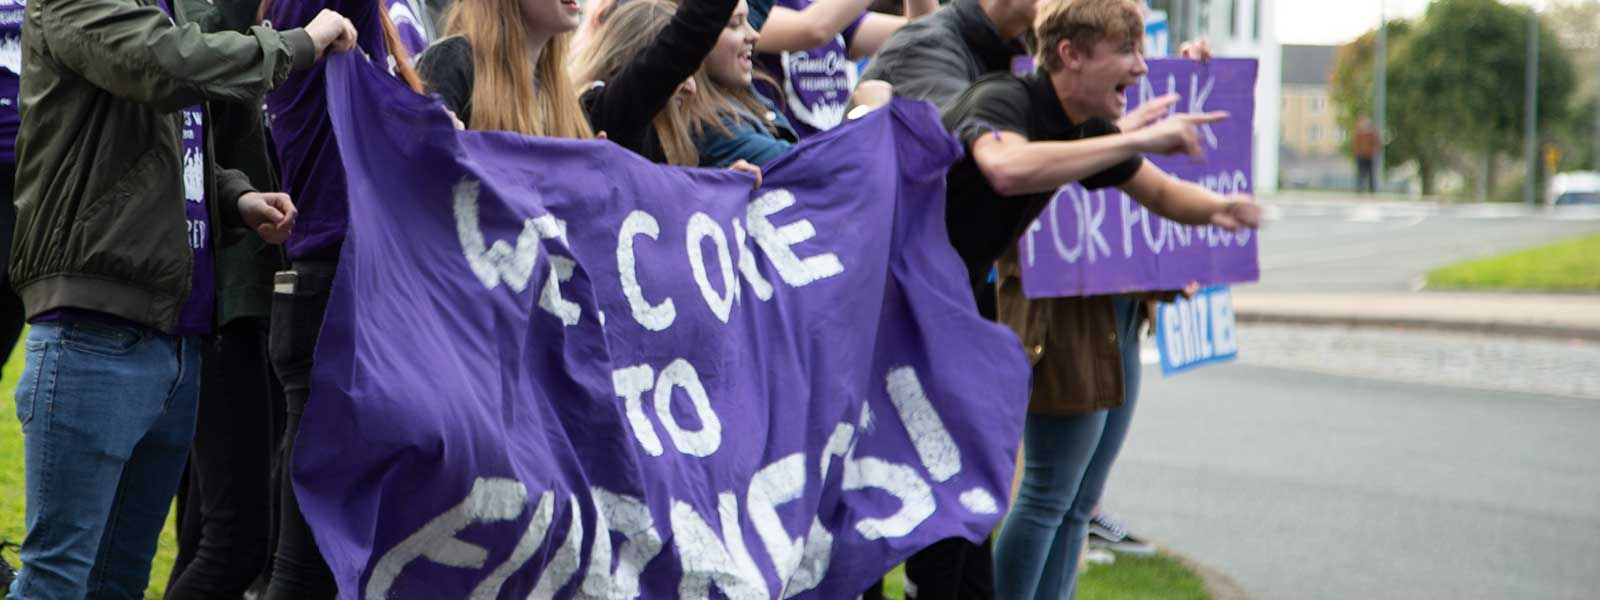 Students holding Furness welcome banners